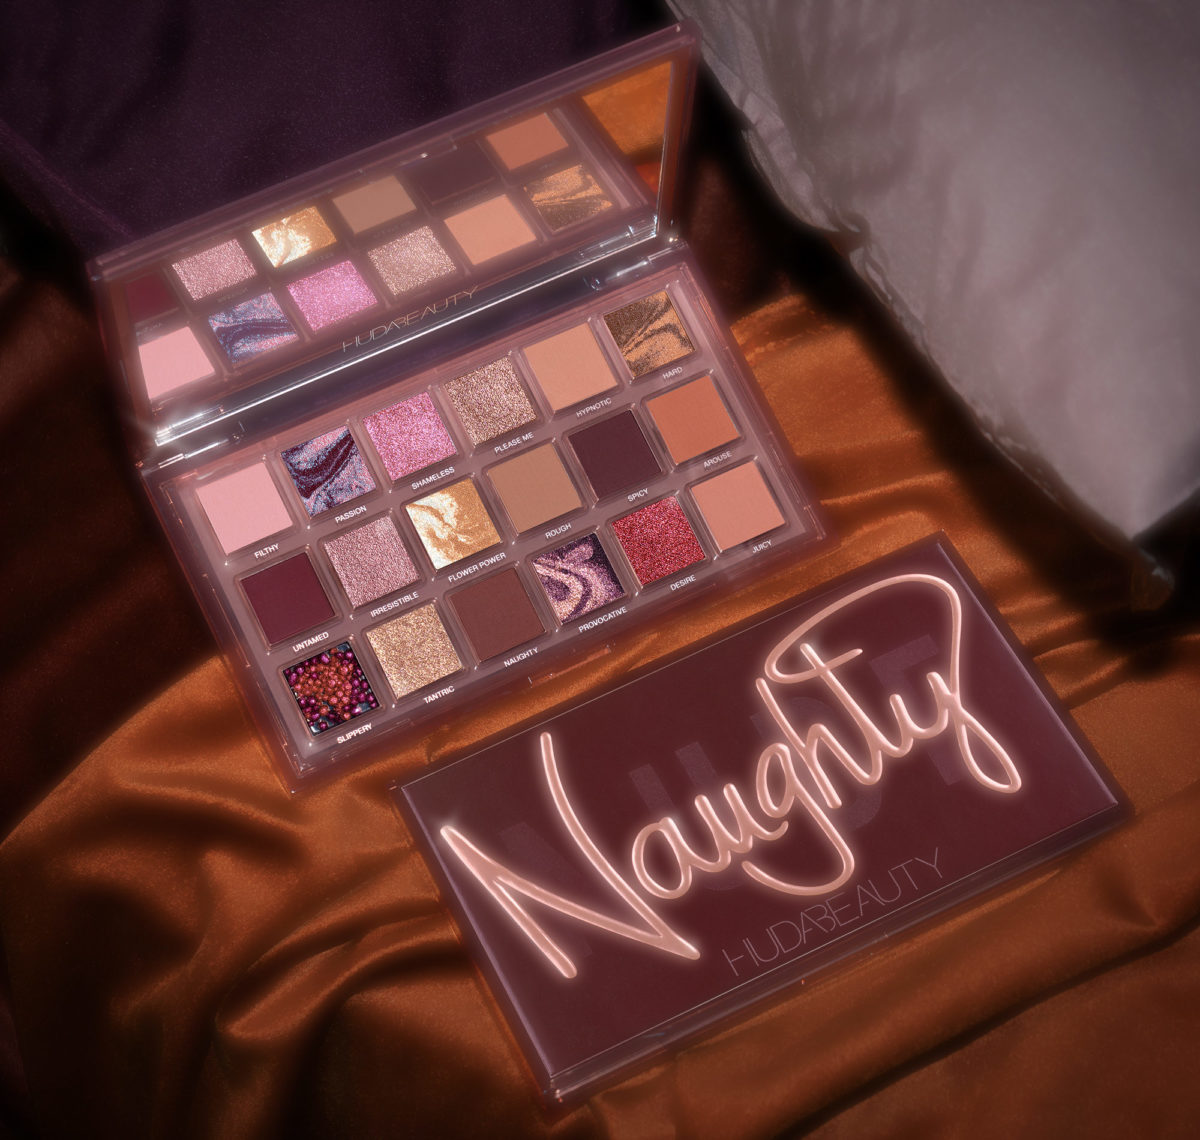 Huda Beauty Naughty Nude palette